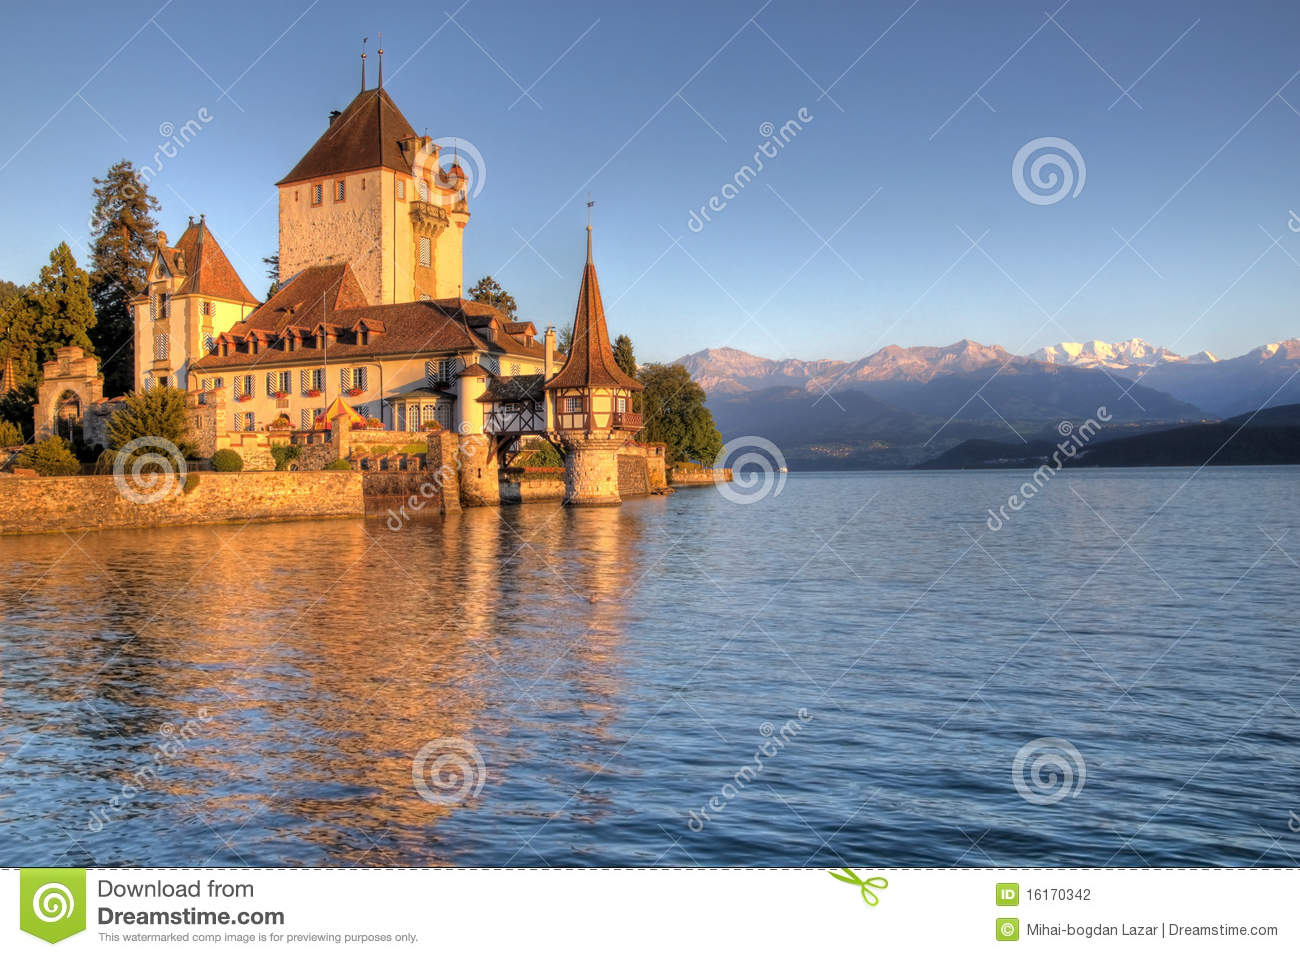 Schloss Oberhofen on Thun Lake, Switzerland